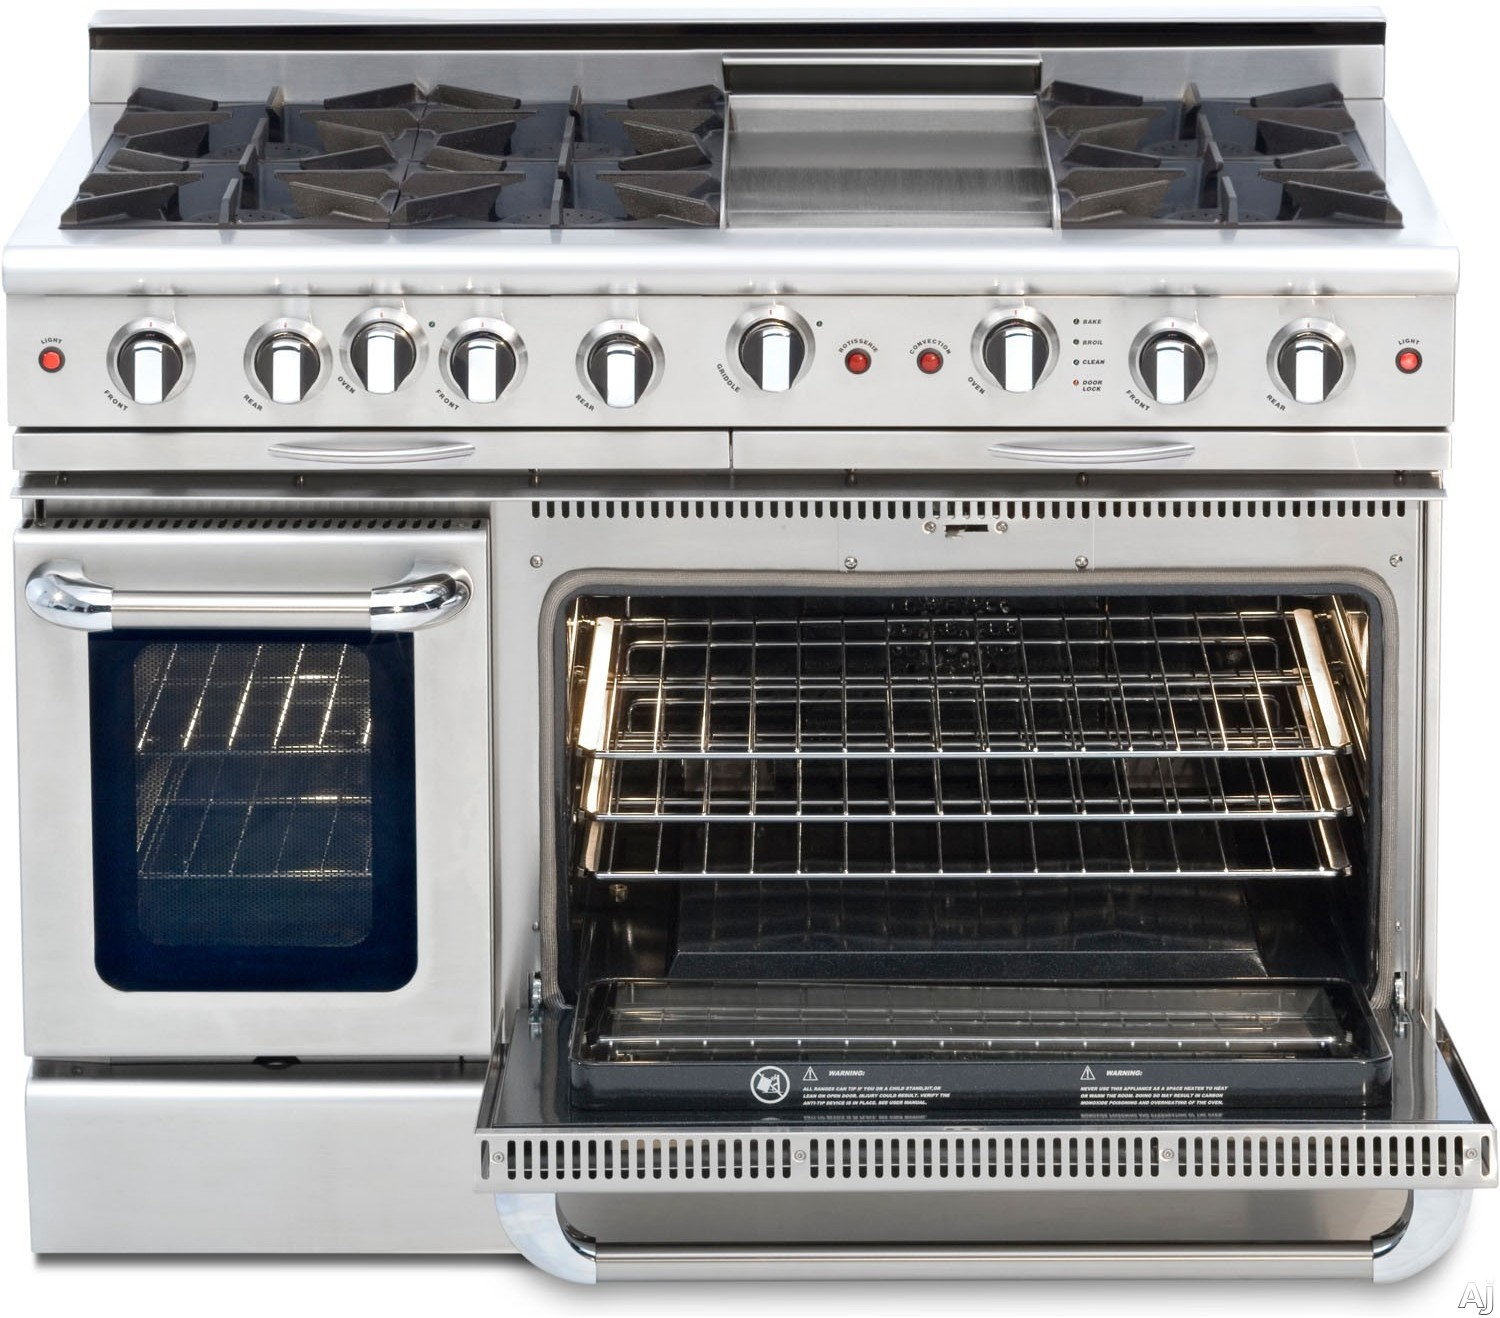 Capital Culinarian Series CGSR484G2N 48 Inch Pro-Style Gas Range with 6 Open Burners, 12